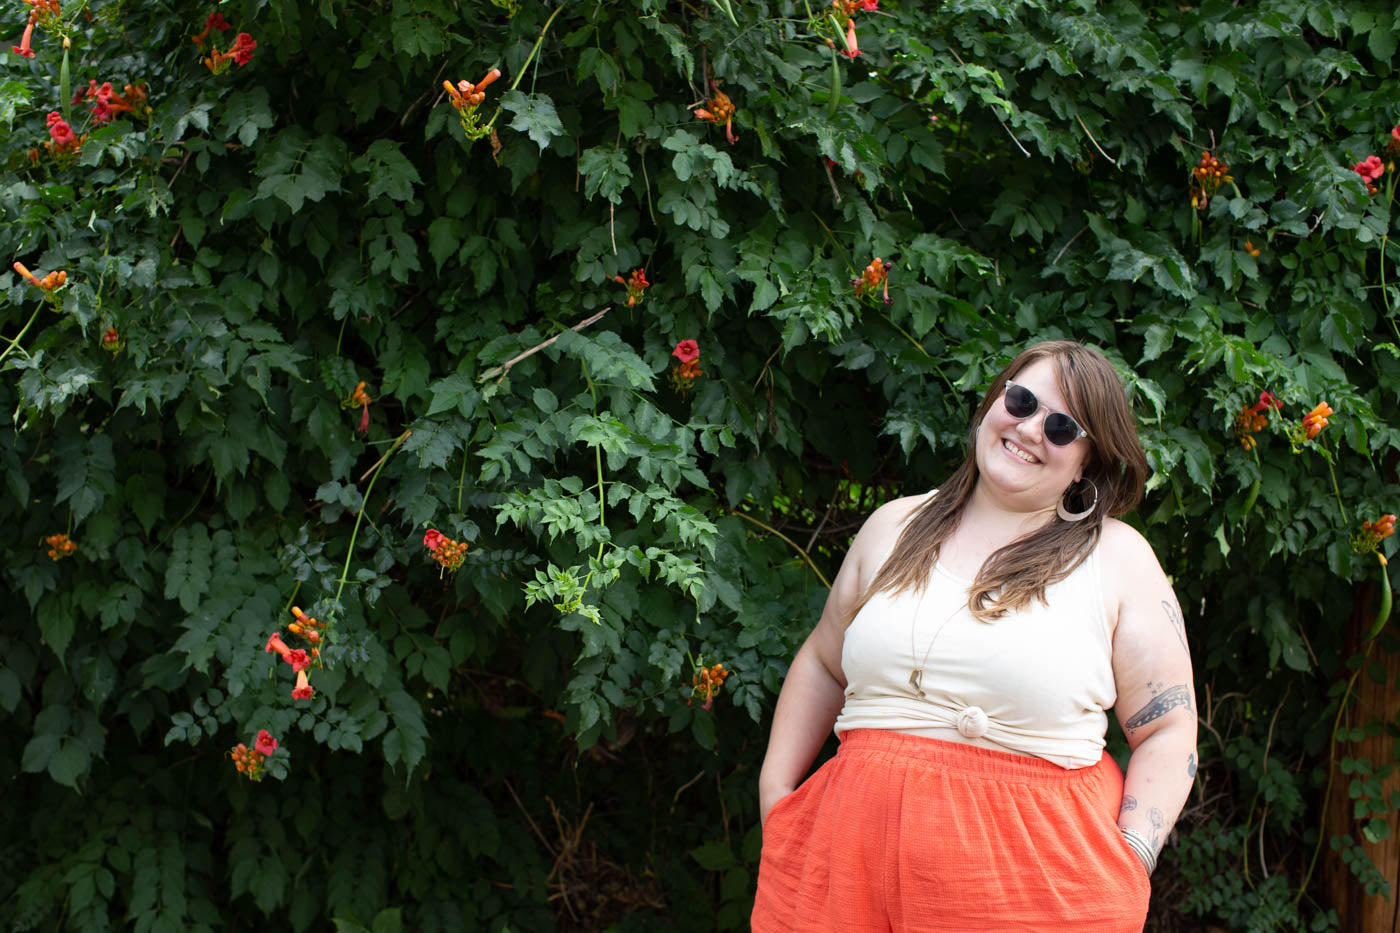 Women facing camera with sunglasses on with her hands in her pocket smiling.  Background is greenery with bright orange flowers that match the women's pants and the top is a cream colored tank top.